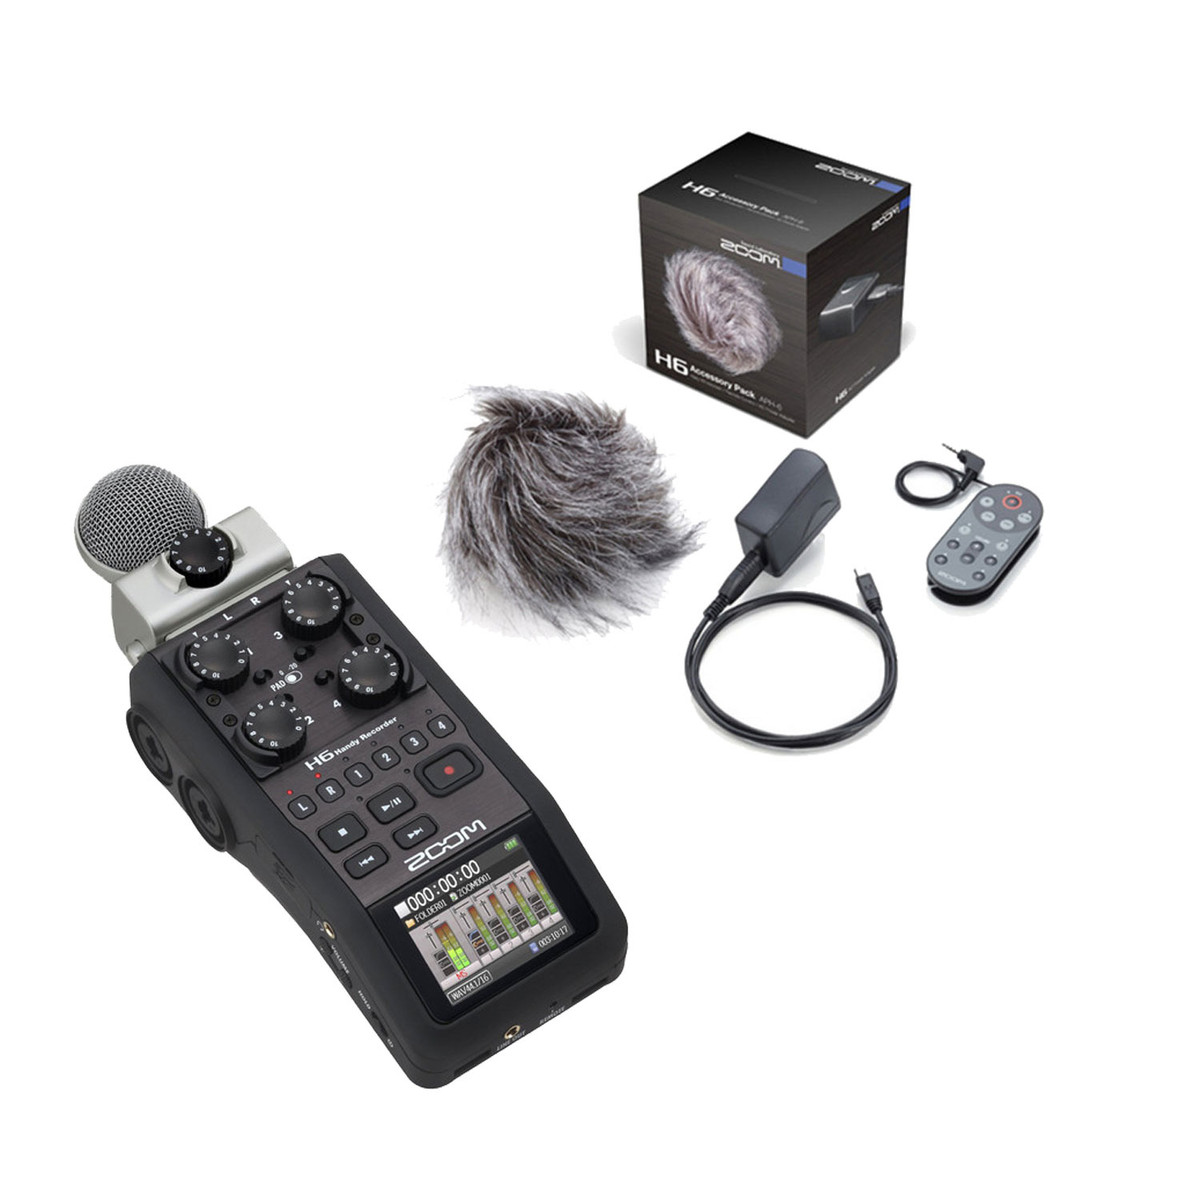 Zoom H6 Recorder Zoom H6 Handheld Recorder With Accessory Pack